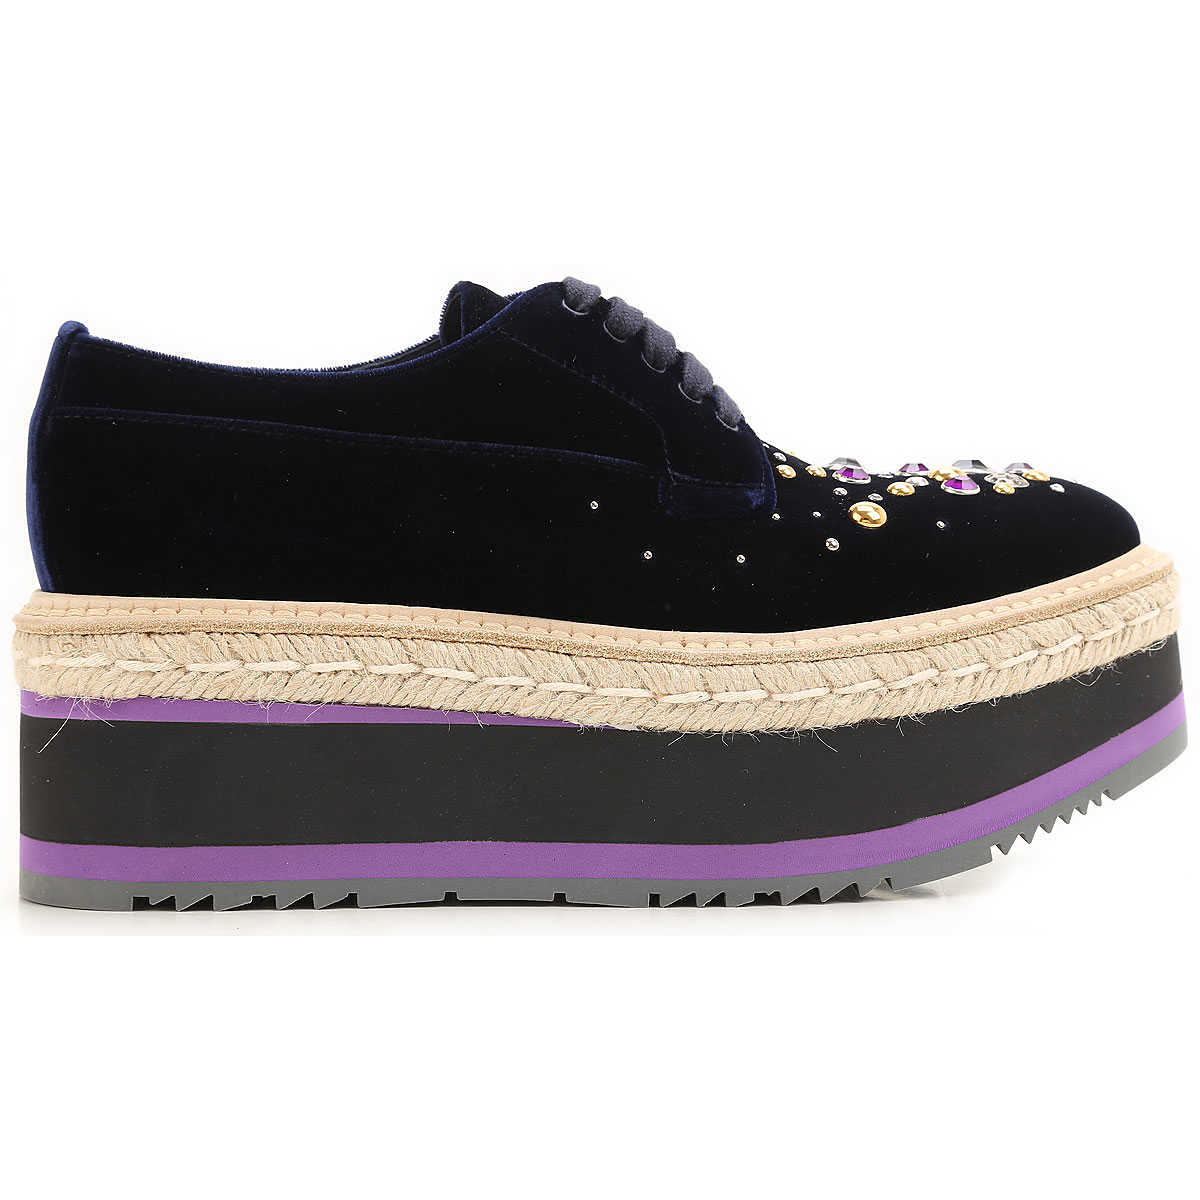 Prada Womens Shoes On Sale in Outlet Blue - GOOFASH